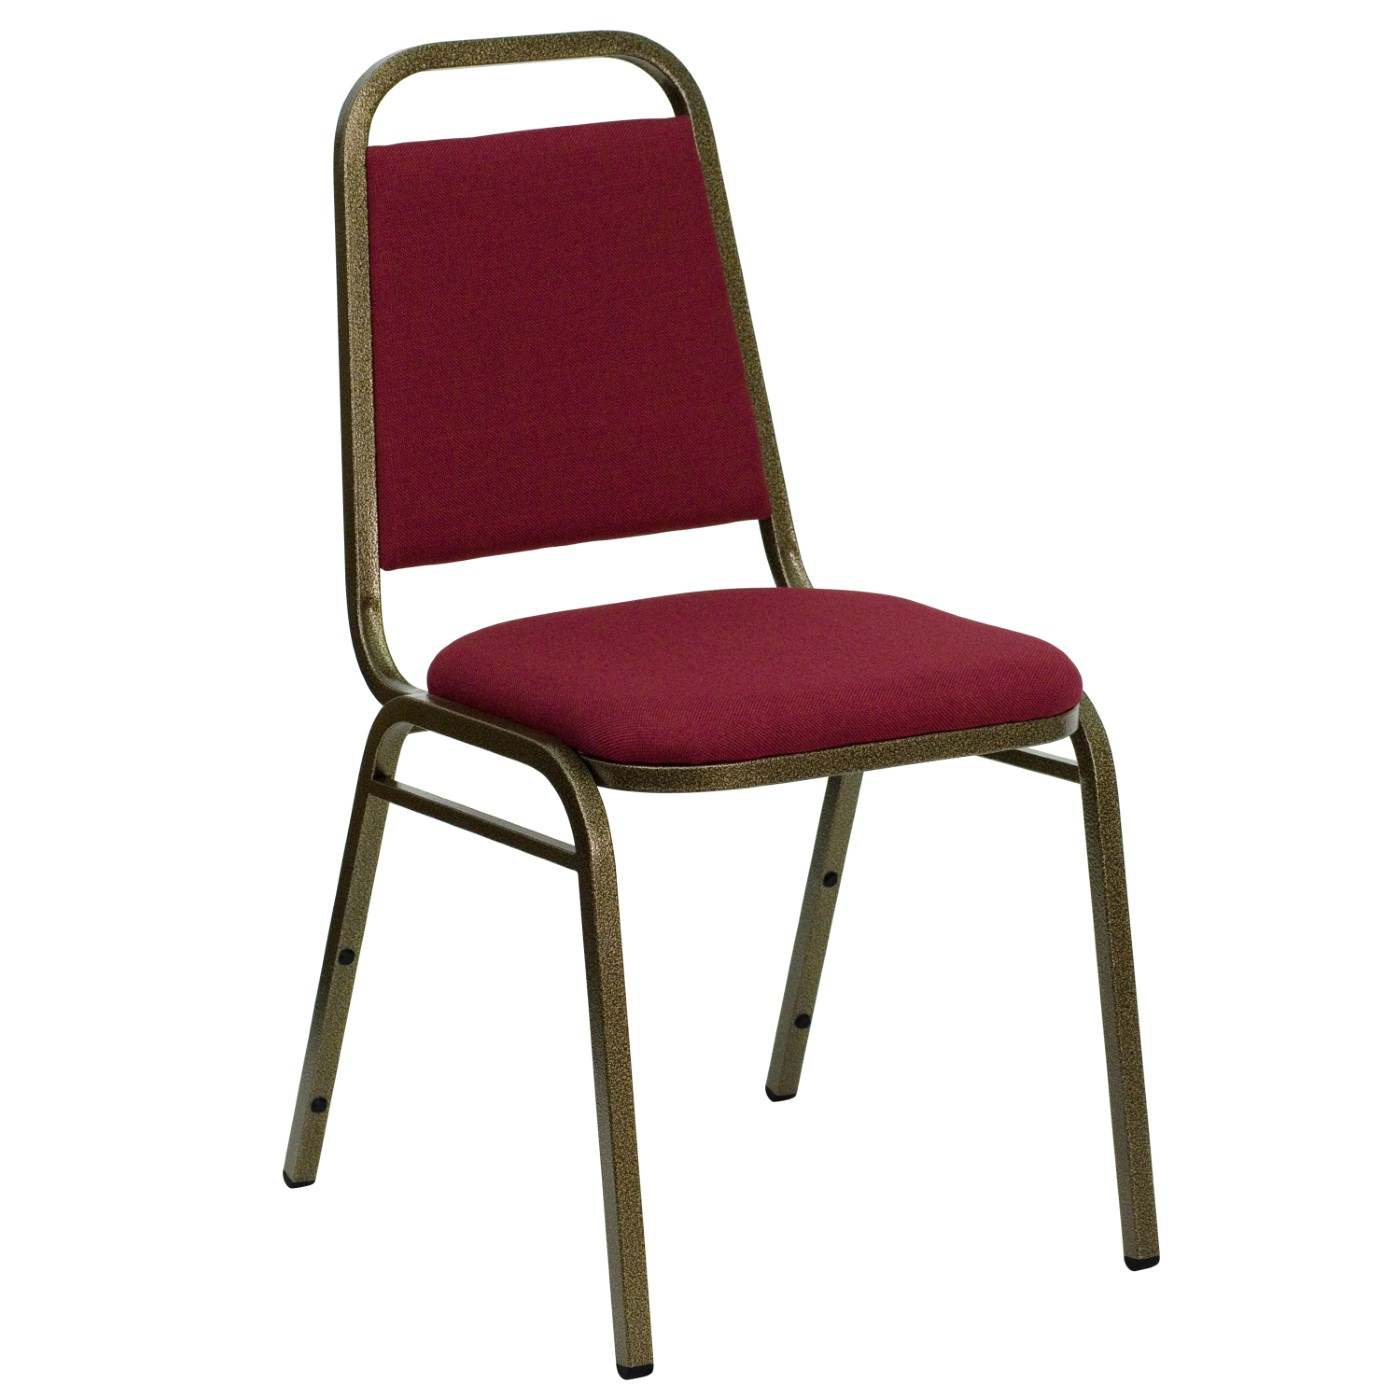 TOUGH ENOUGH Series Trapezoidal Back Stacking Banquet Chair in Burgundy Fabric - Gold Vein Frame